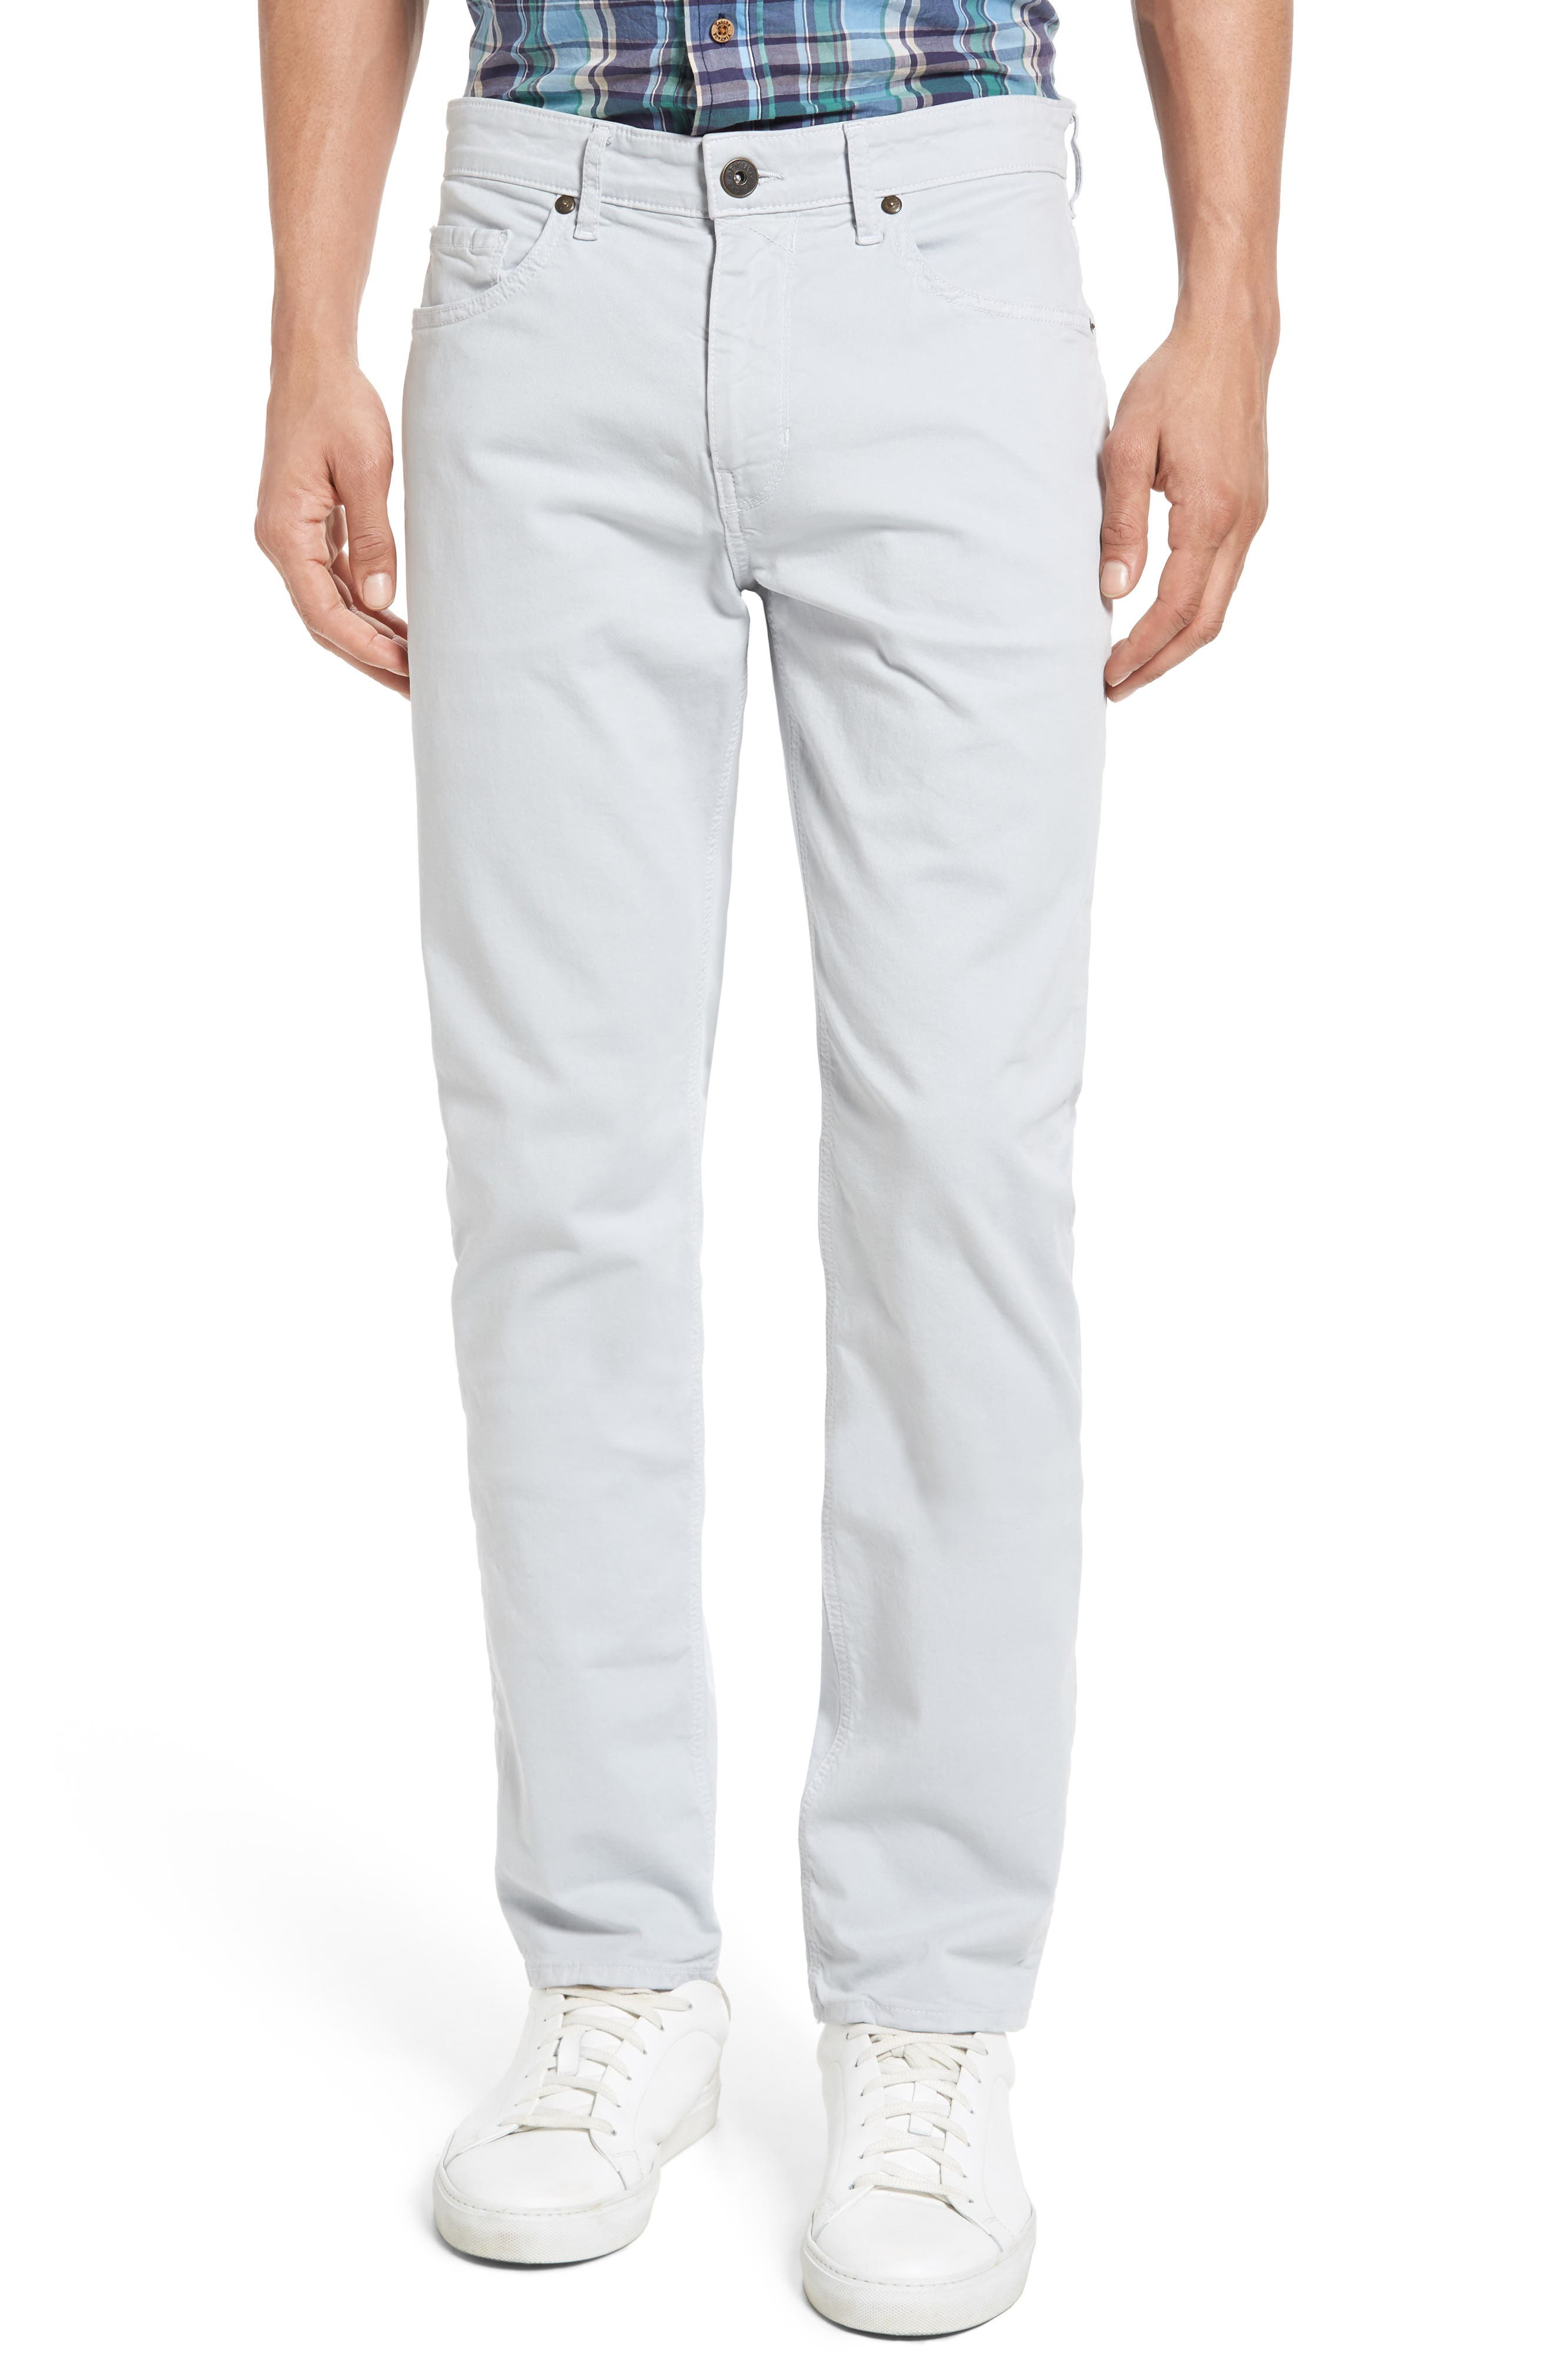 Lennox Skinny Fit Jeans,                         Main,                         color, Blue Spring